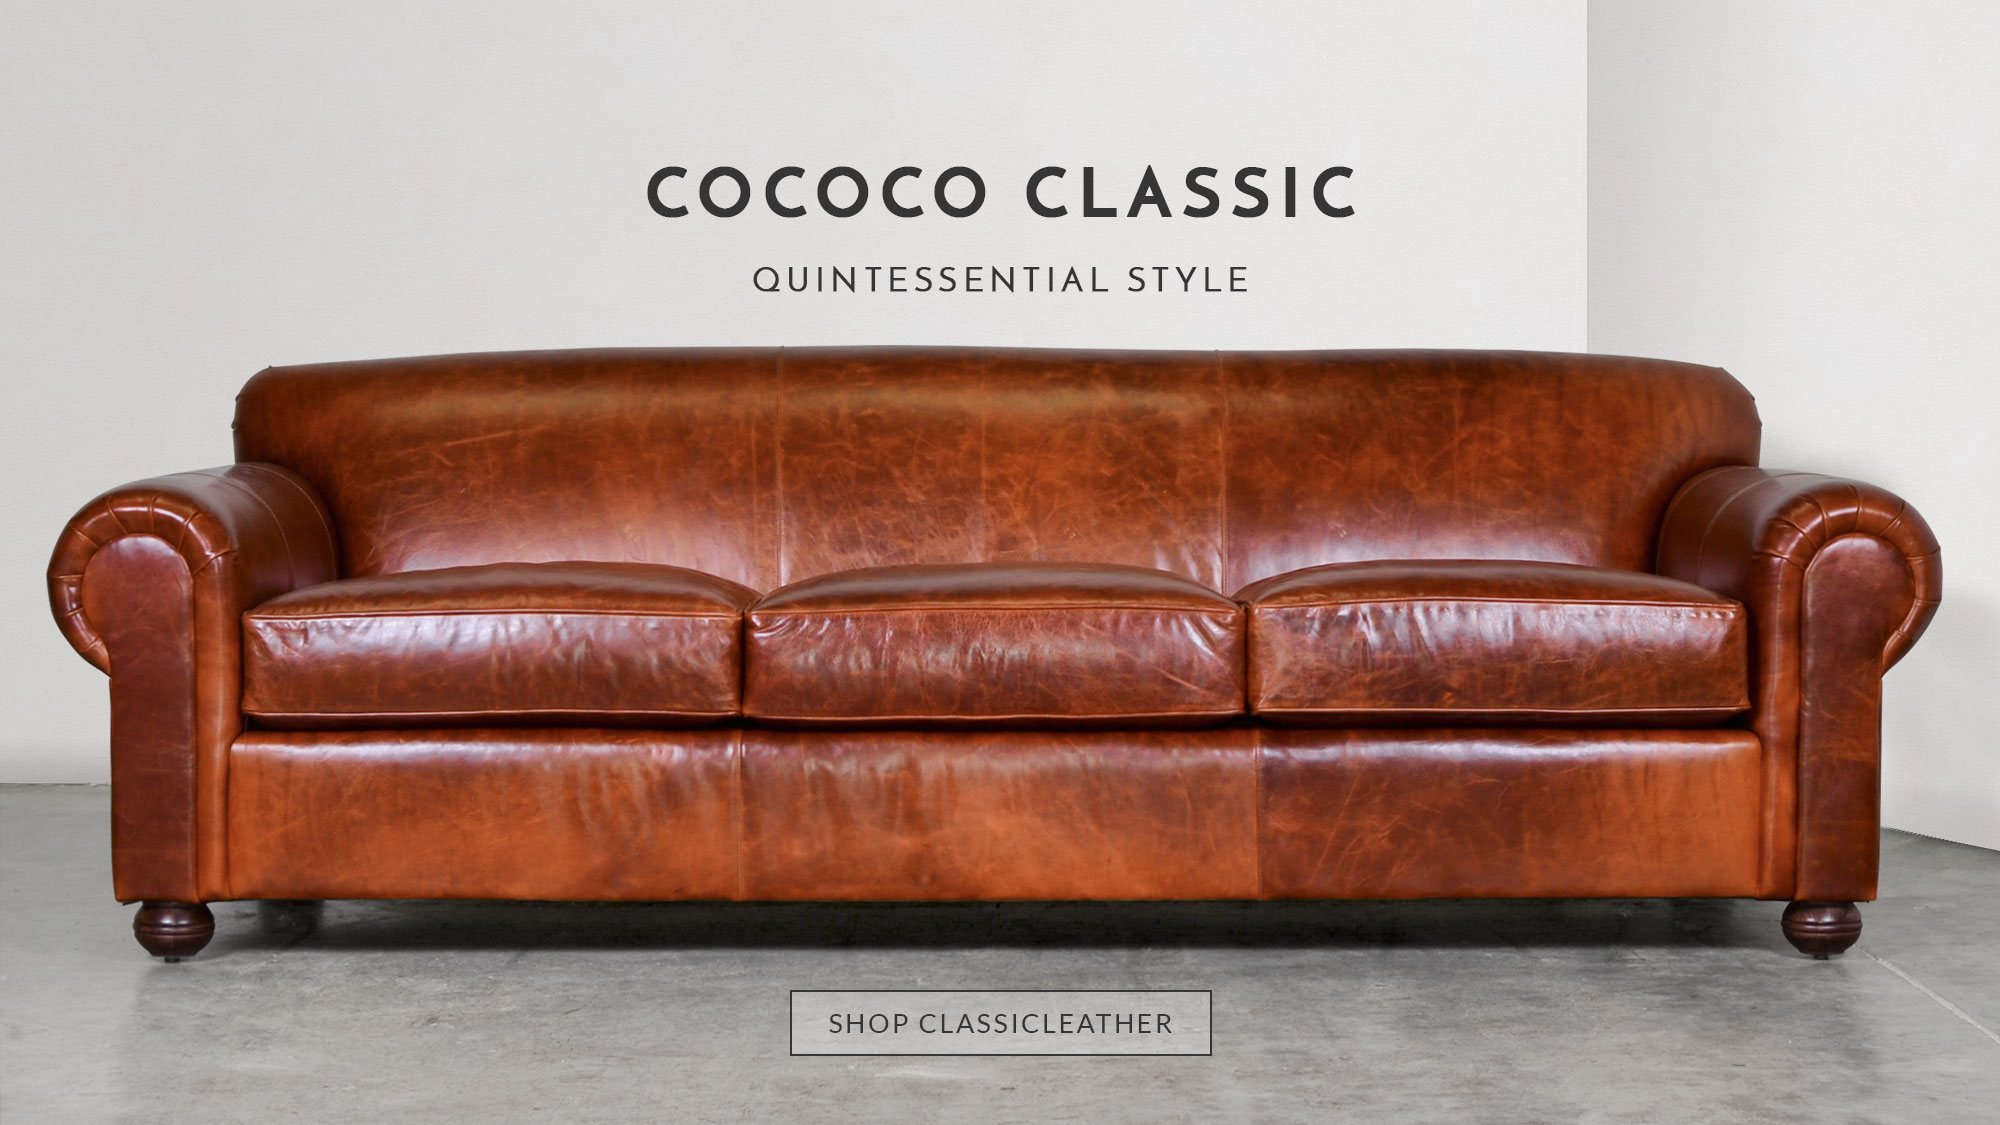 Chesterfield Sofas, Modern Furniture Made In Usa | Cococohome Within Gina Blue Leather Sofa Chairs (Image 5 of 25)